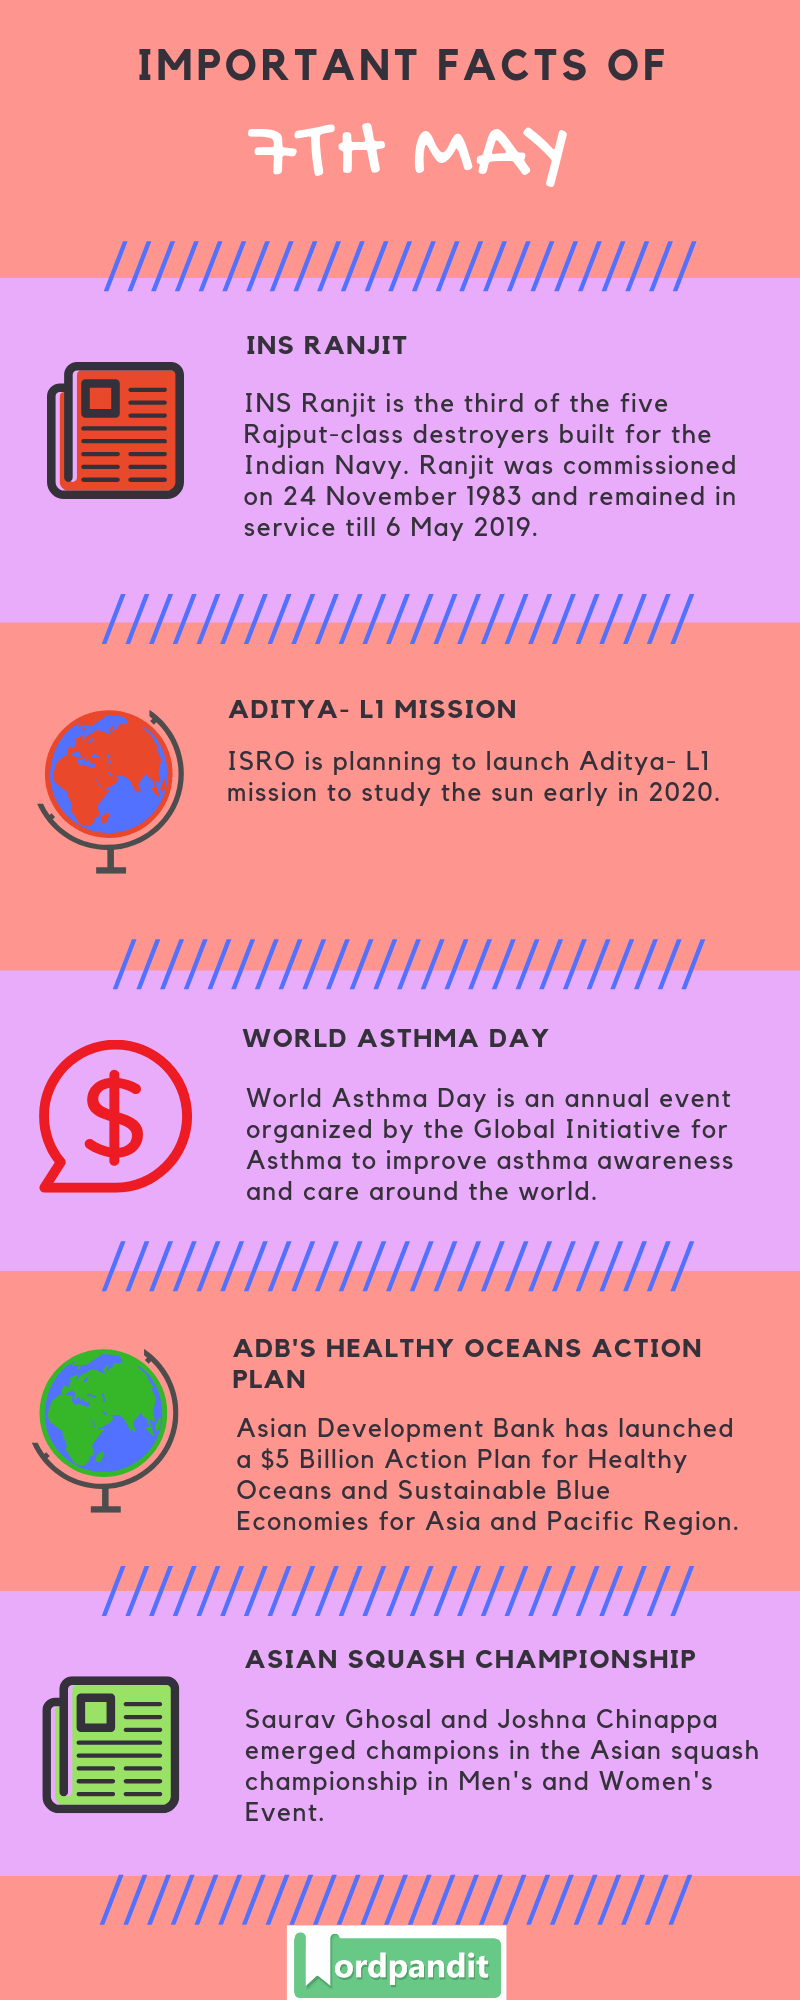 Daily Current Affairs 7 May 2019 Current Affairs Quiz 7 May 2019 Current Affairs Infographic